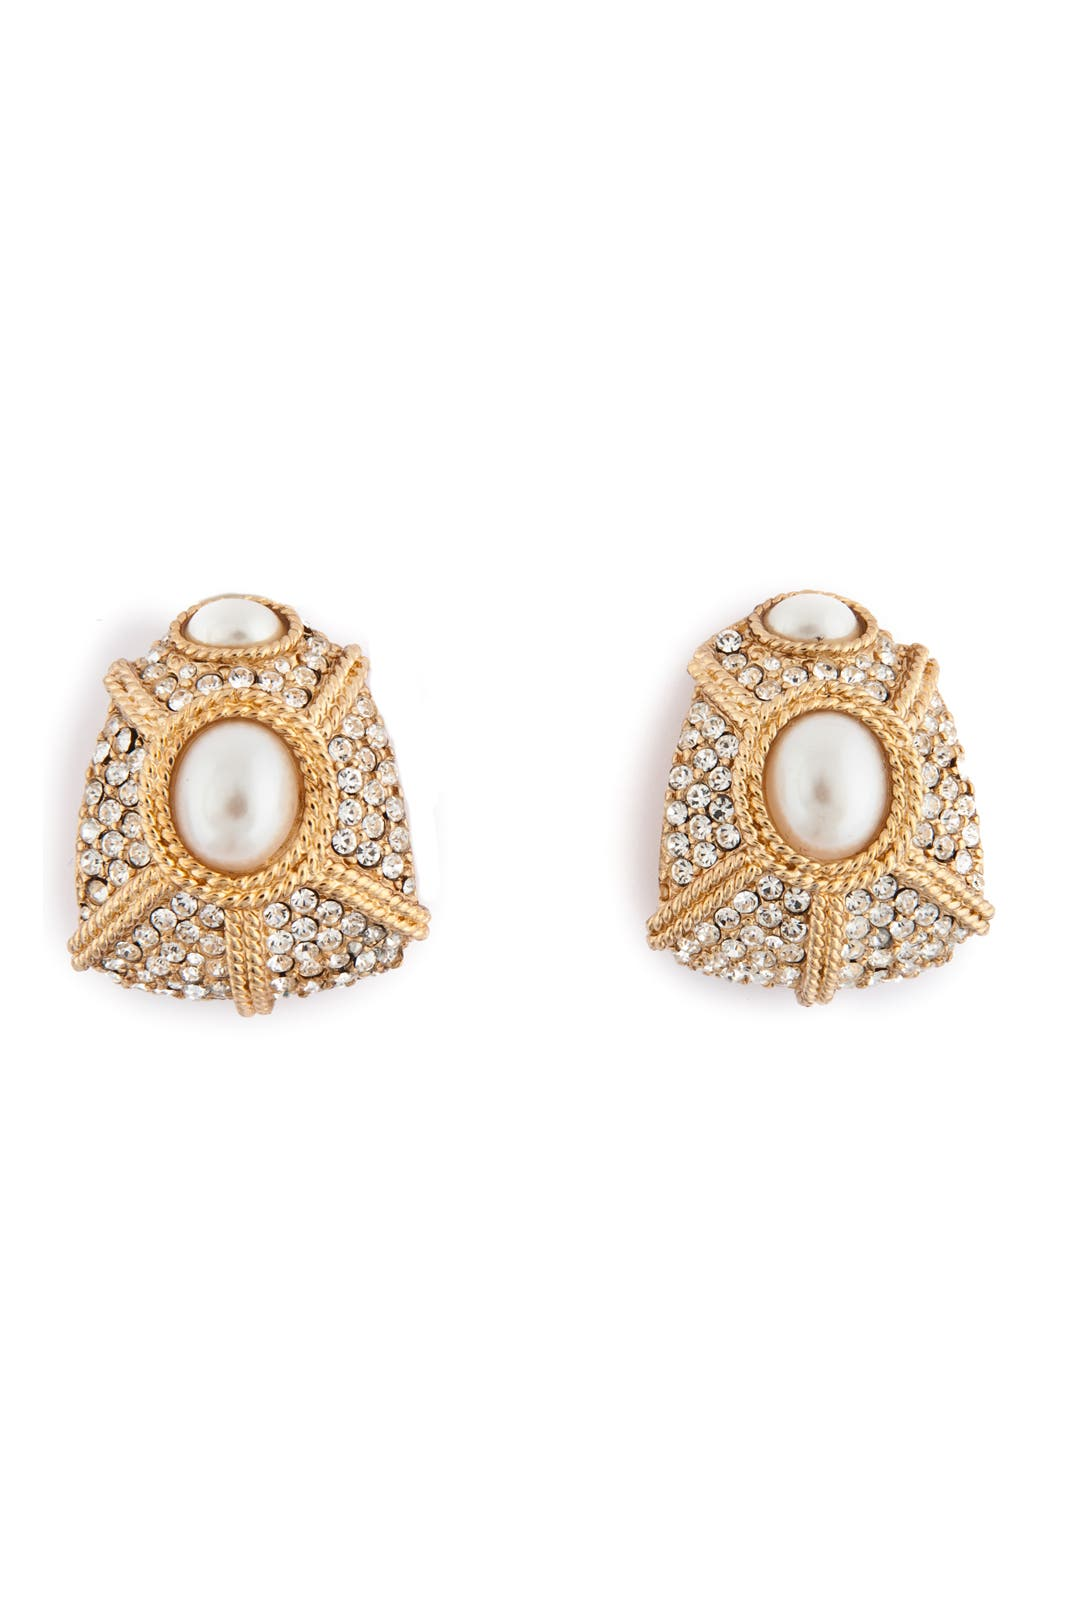 Old Hollywood Glamour Earrings by Ciner